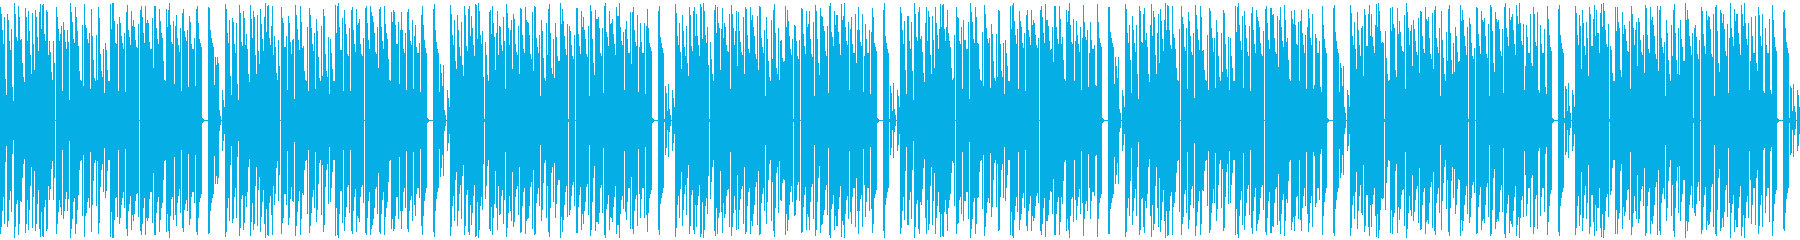 For 8bit Honobono town and shops and events's reproduced waveform